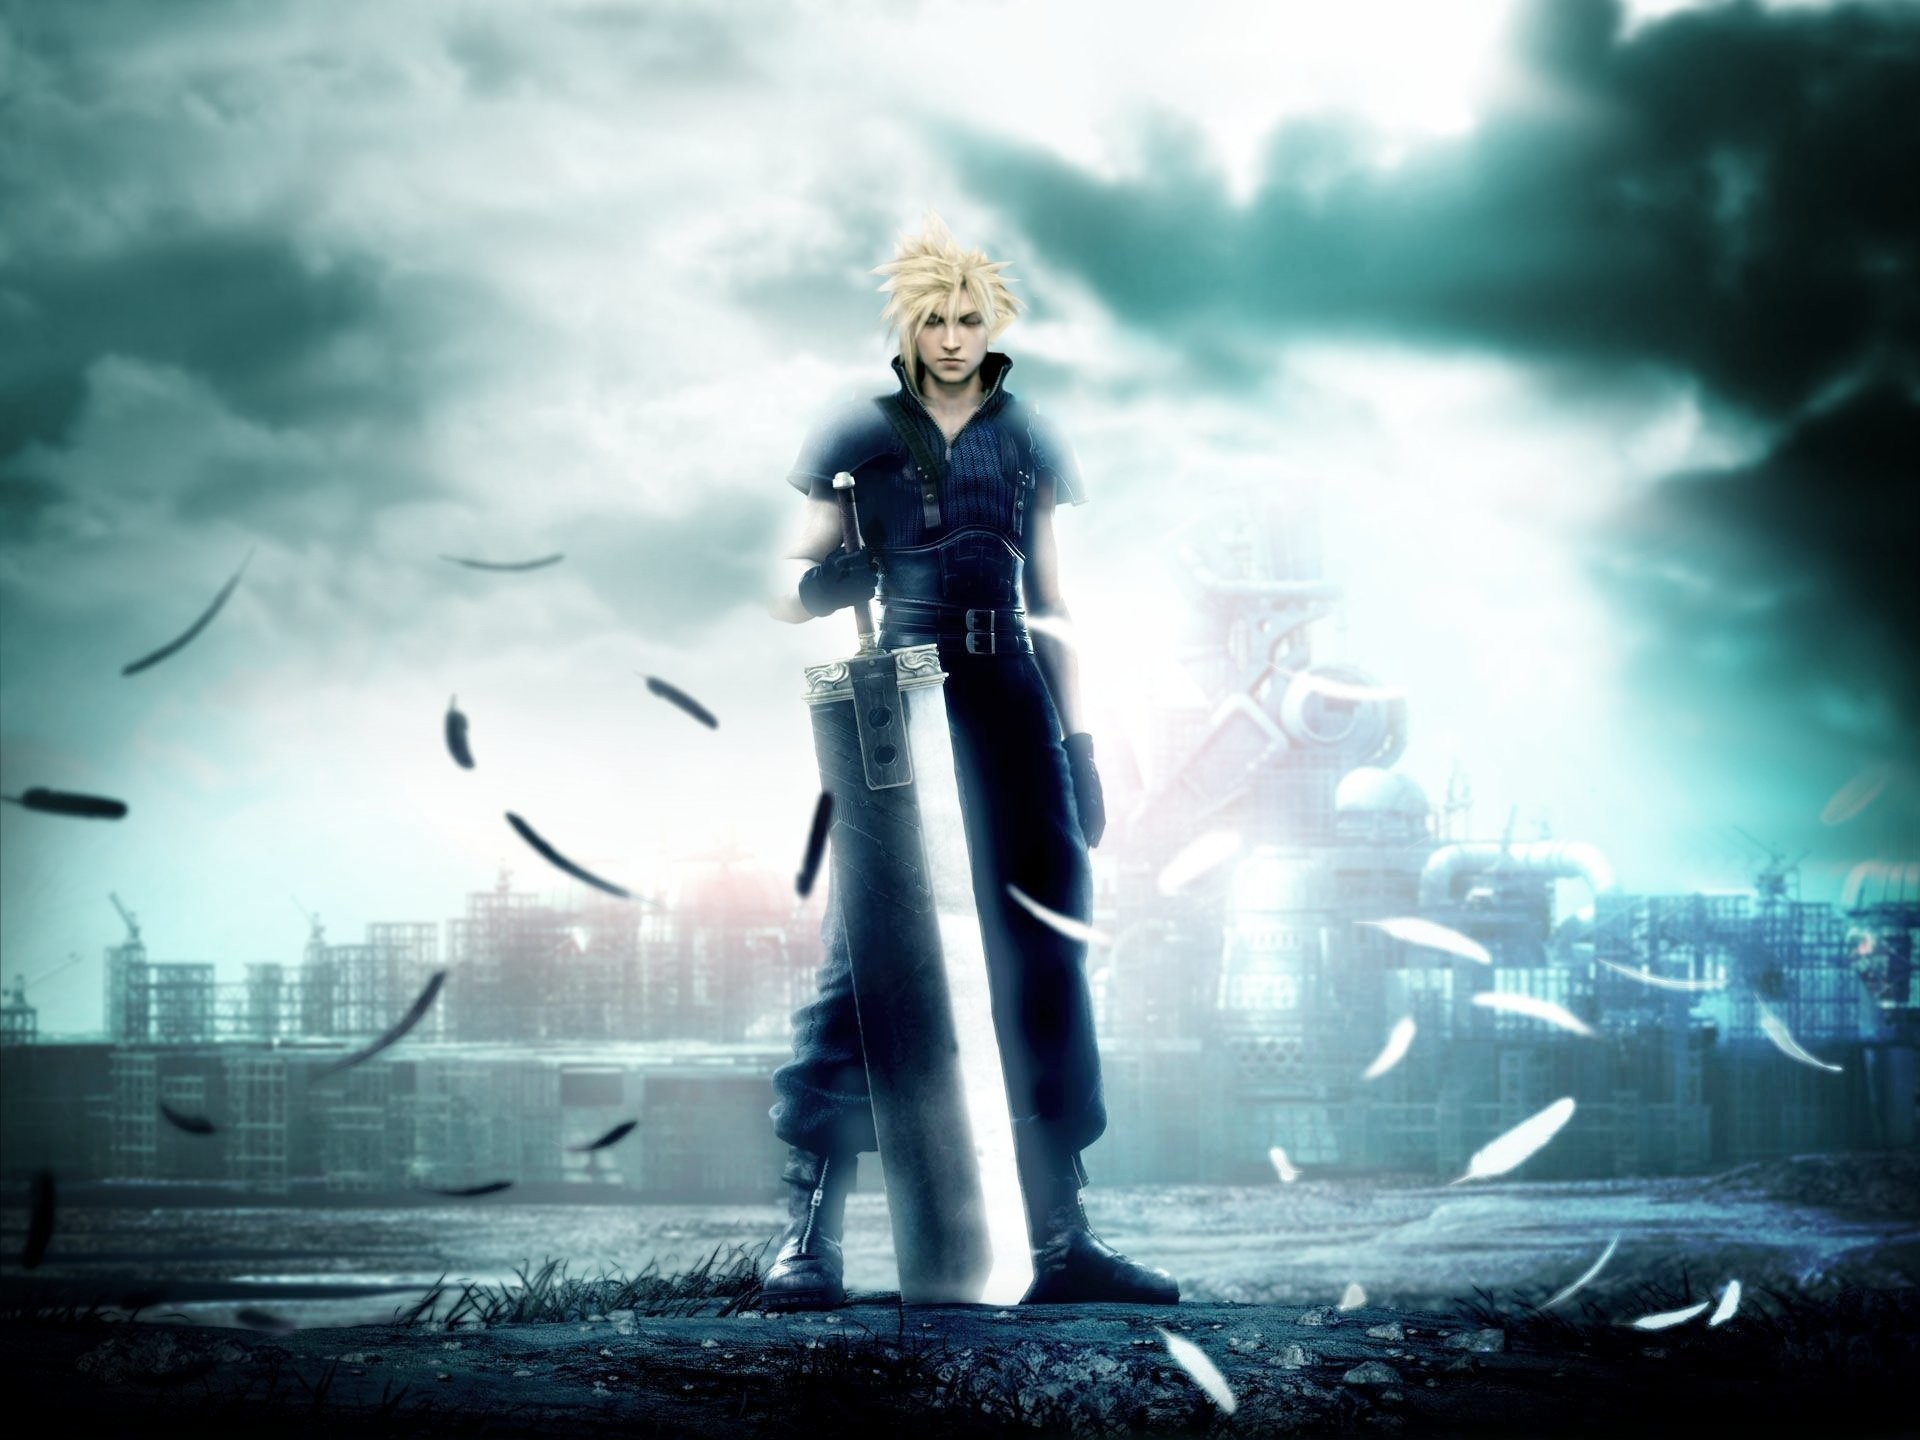 Final Fantasy 7 Advent Children Wallpaper Wallpapertag